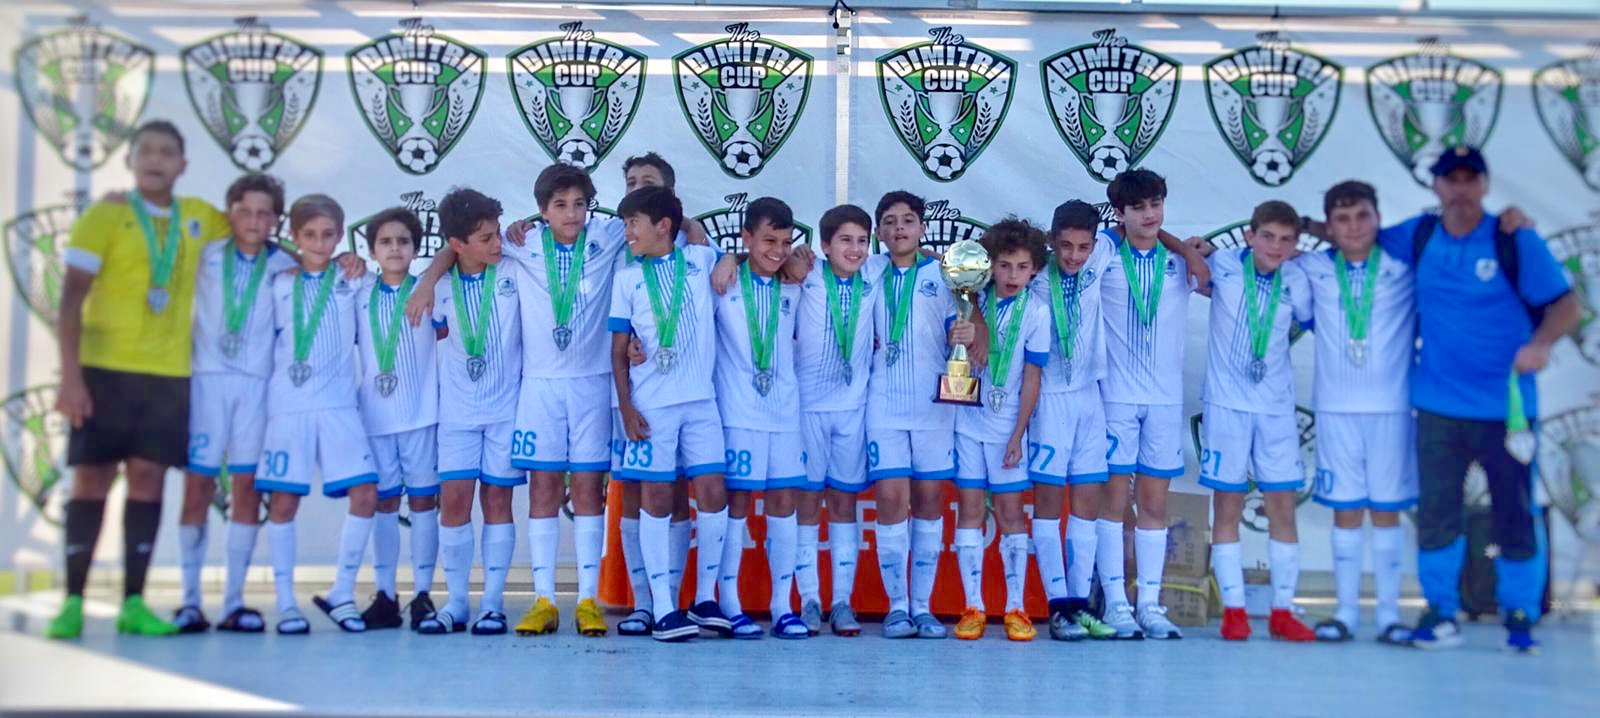 U13 Premier Champion's Dimitri Cup January 12/13, 2019